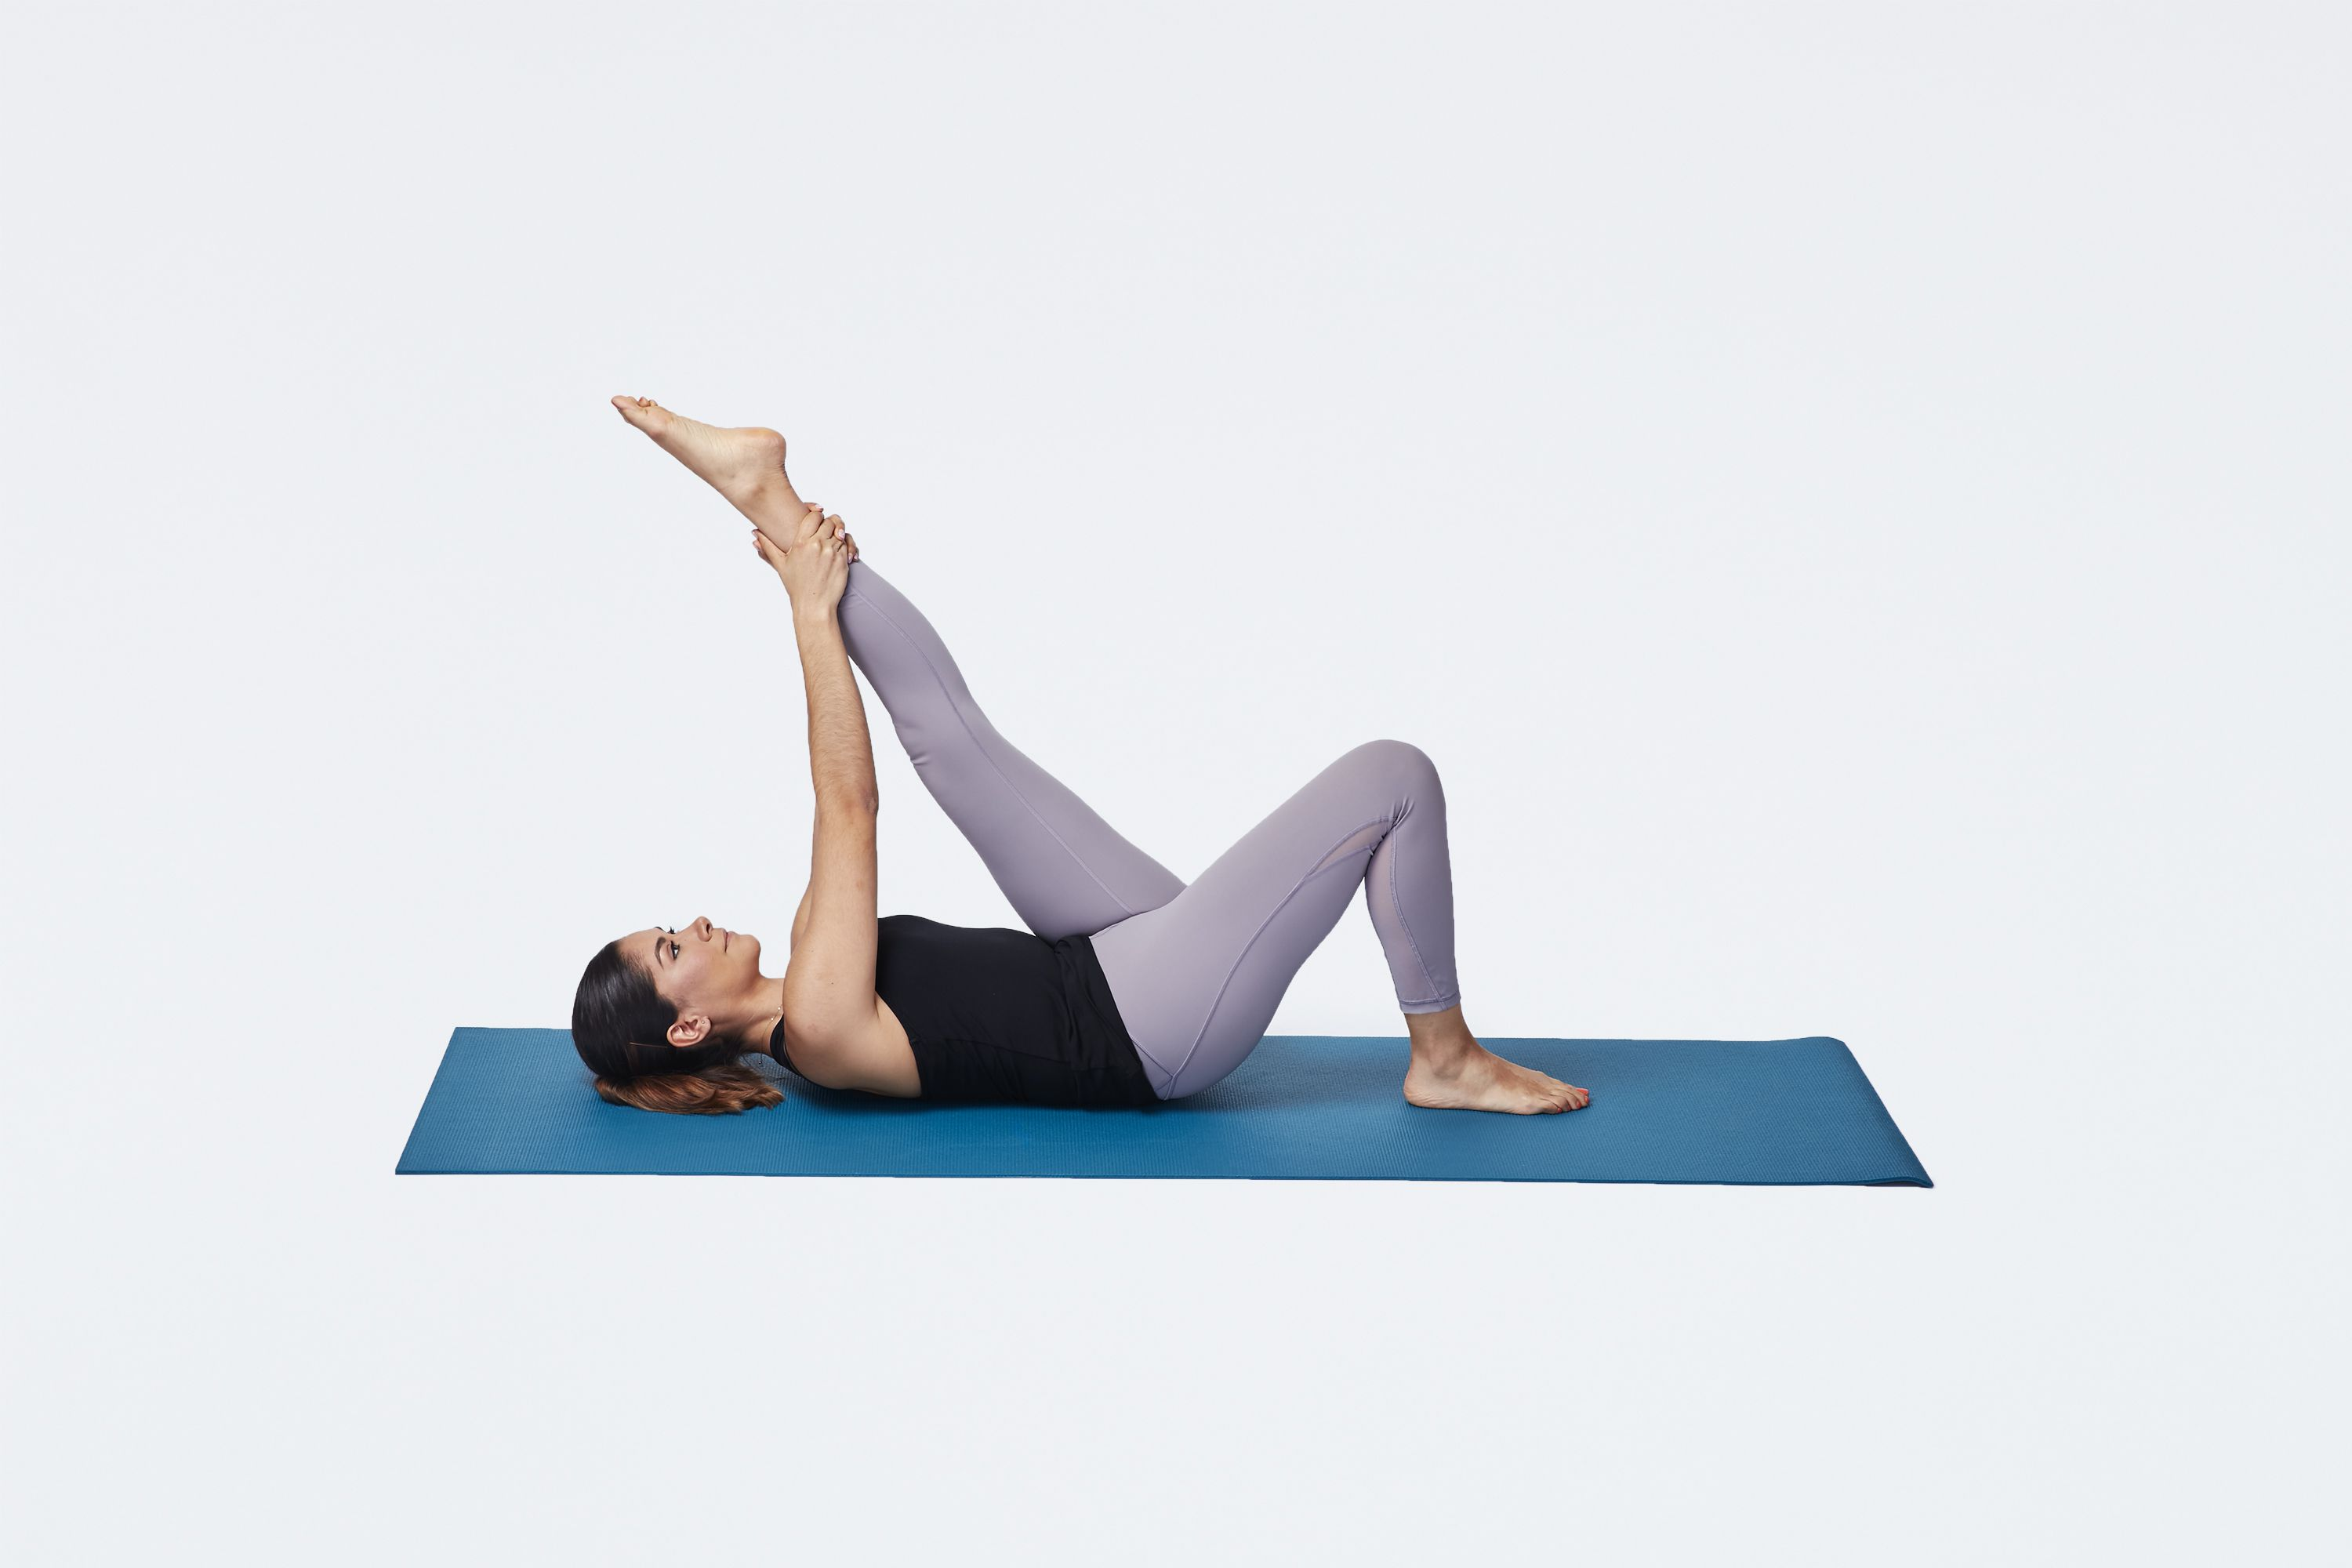 Maximize Your Flexibility With Lower Body Stretches